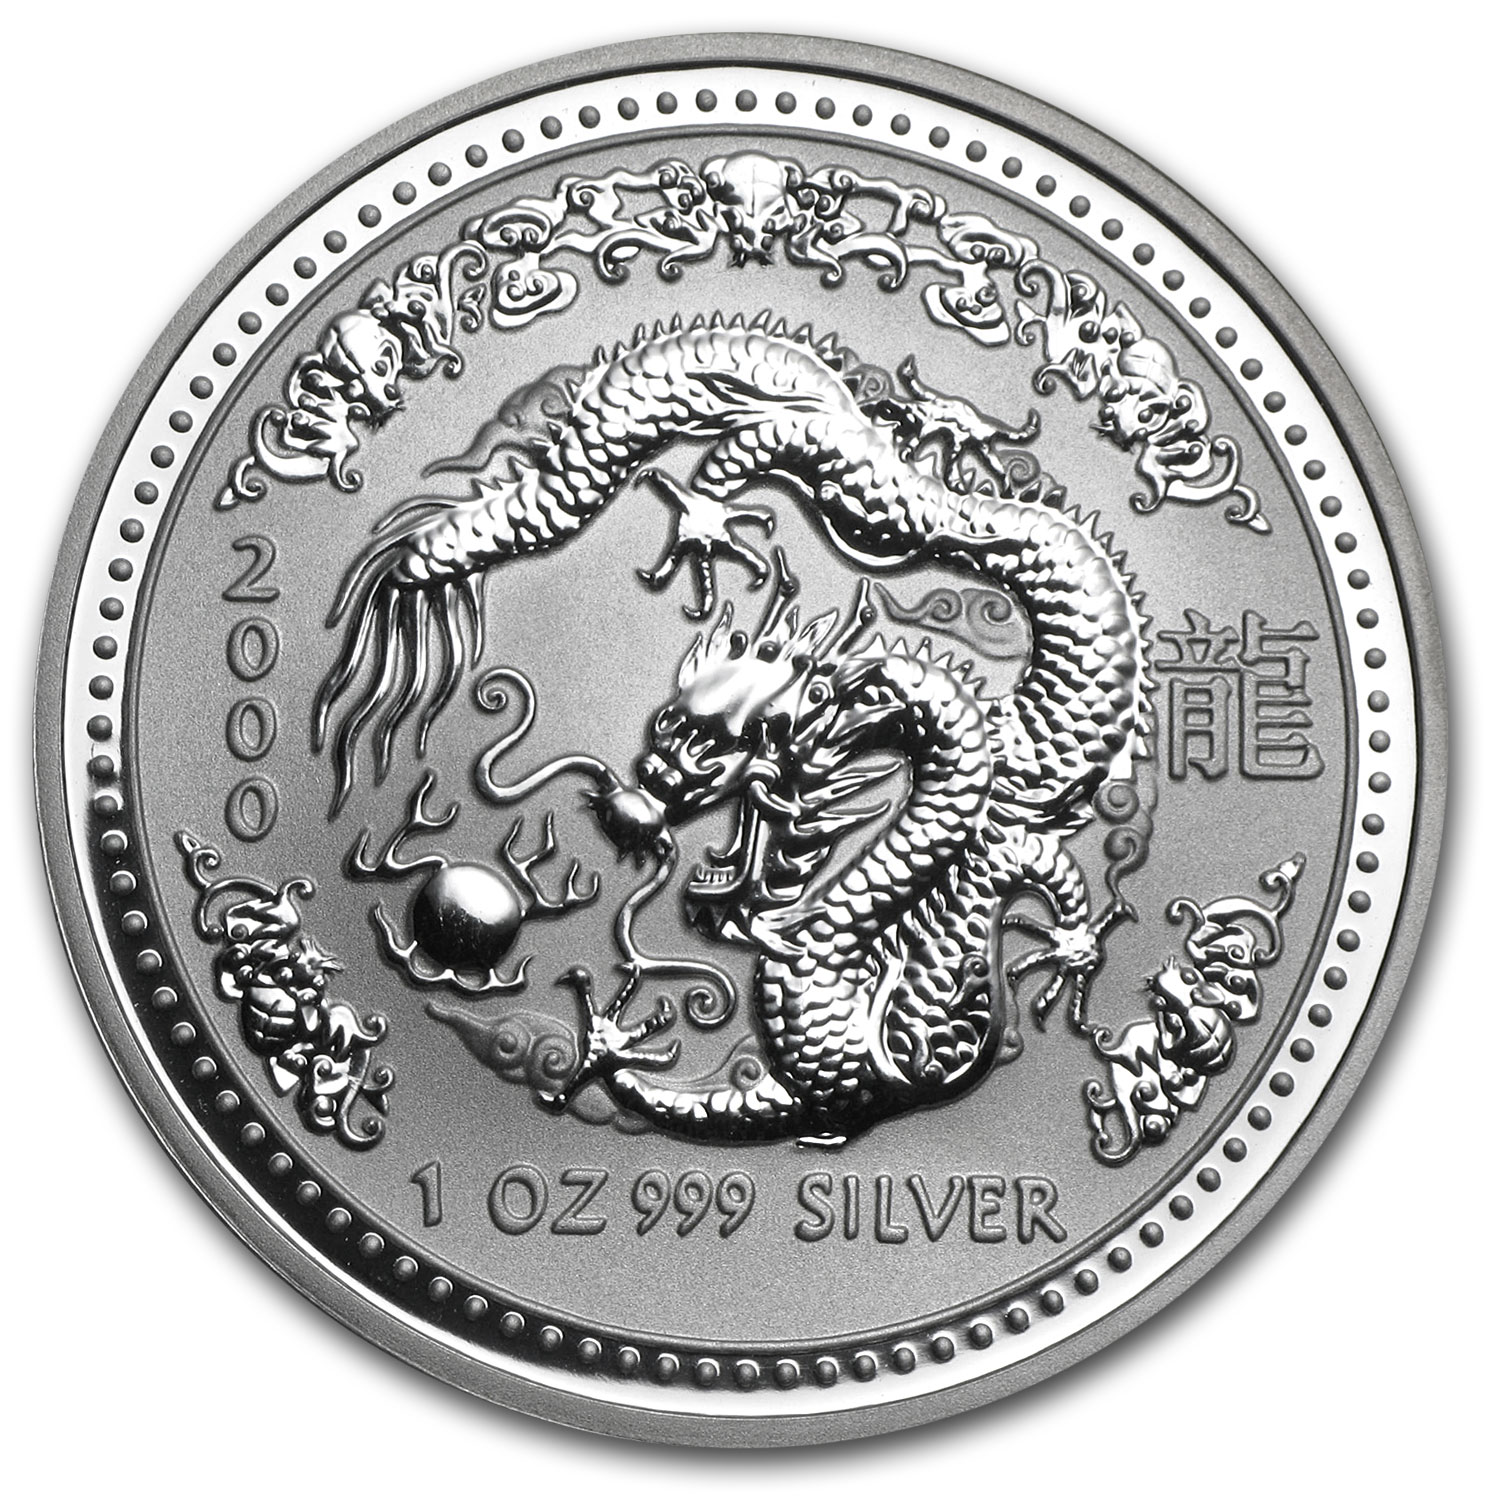 2000 1 oz Silver Lunar Year of the Dragon (Series I)